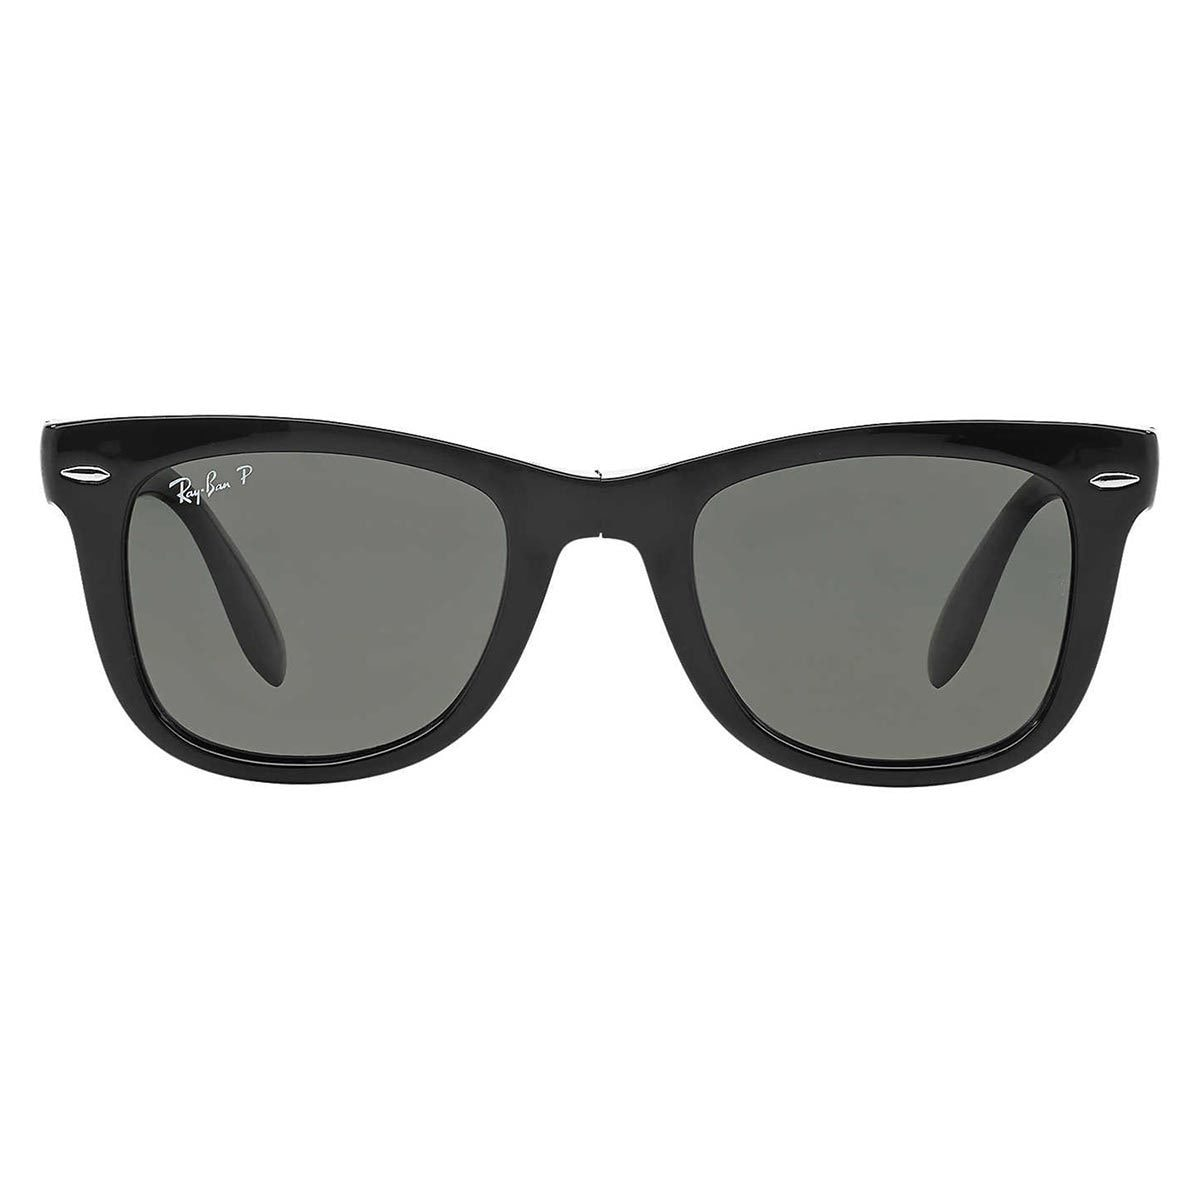 0aac74cfbcc Shop Ray-Ban Wayfarer Folding RB 4105 Unisex Black Frame Green Polarized  Sunglasses - Free Shipping Today - Overstock - 9643864